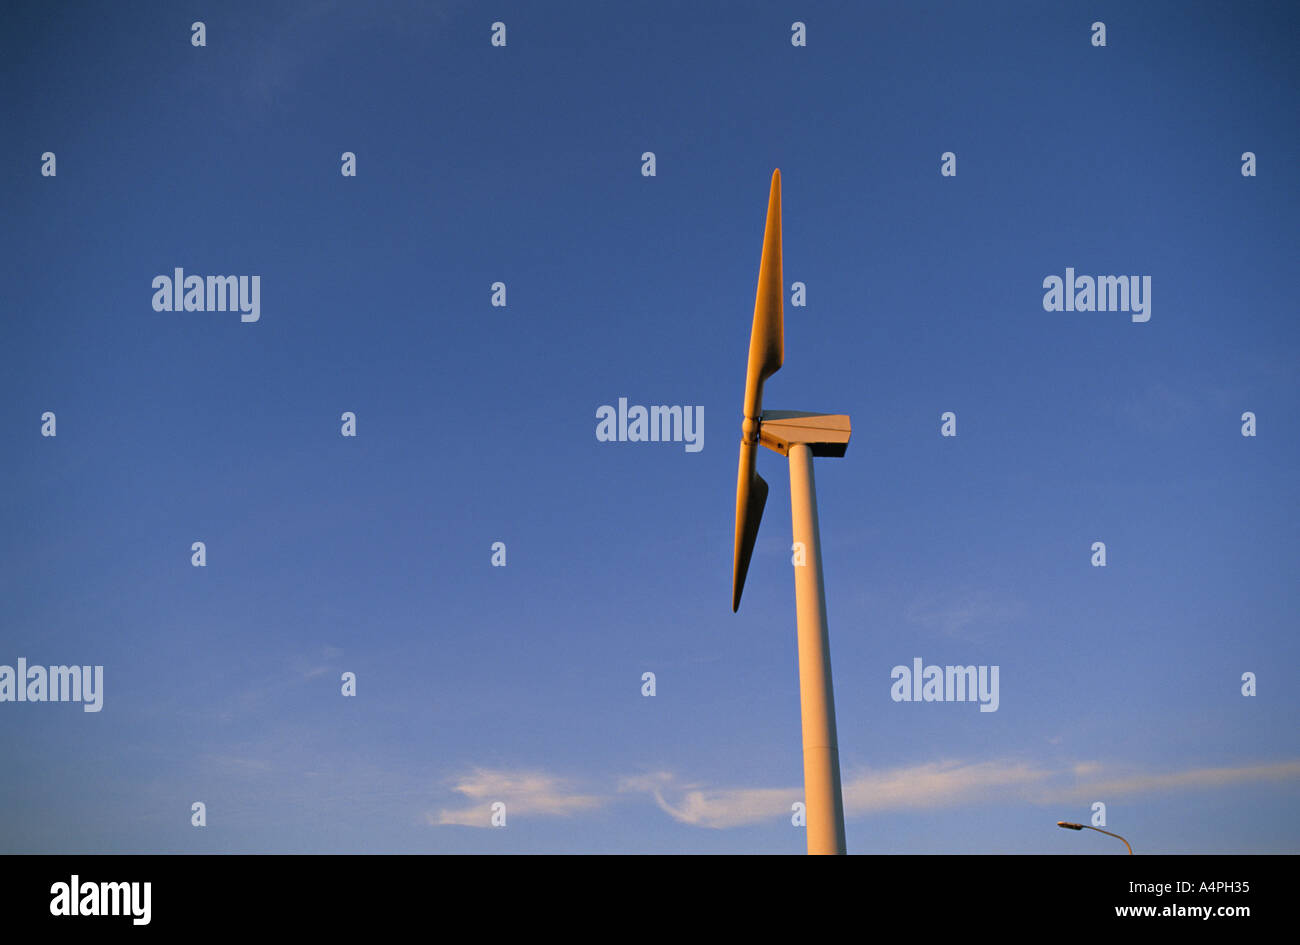 A two bladed wind turbine against a clear blue sky at sunset. Near the coast in The Netherlands. - Stock Image